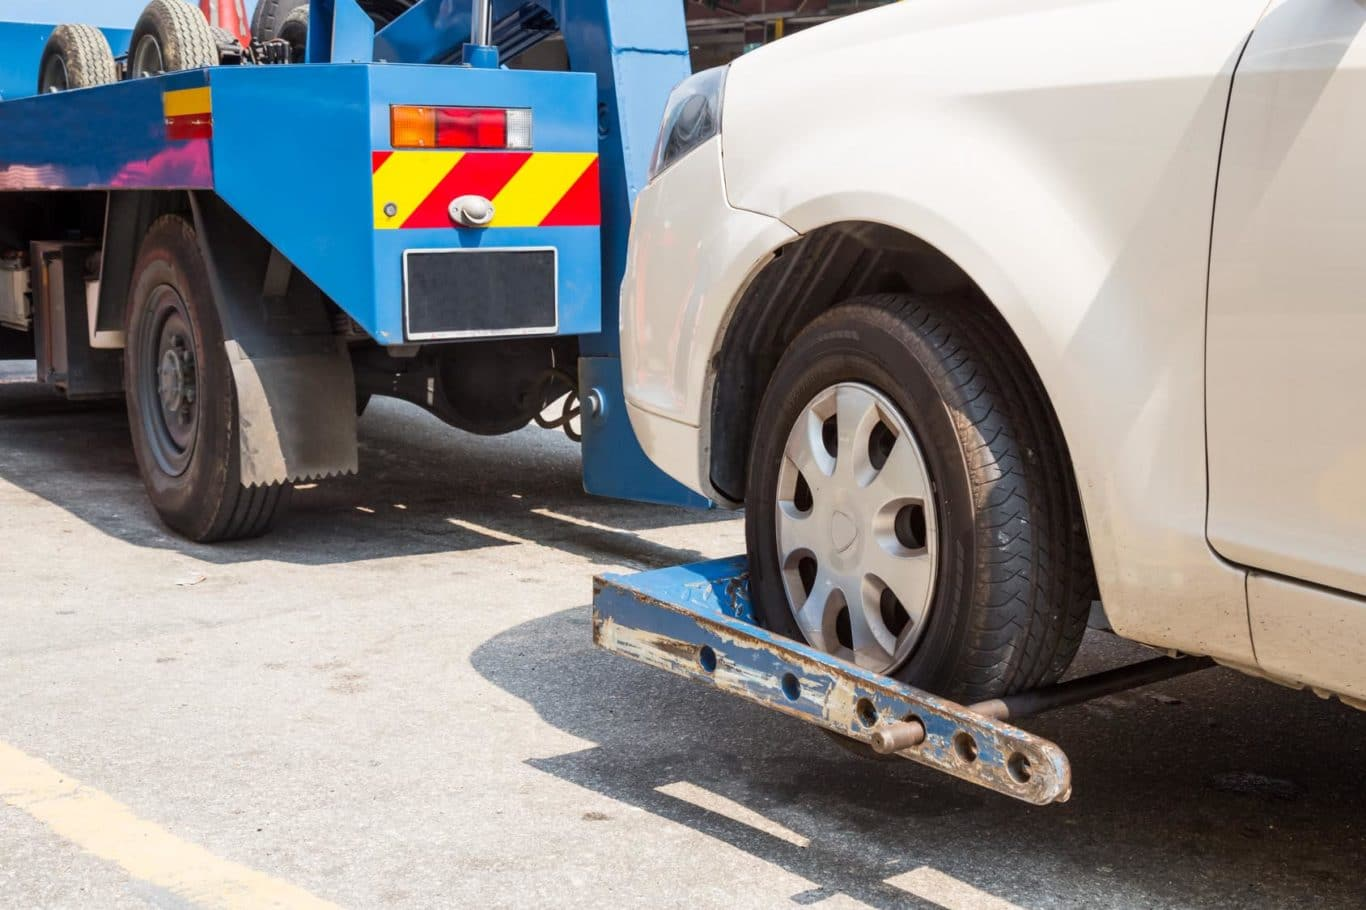 Blessington expert Tow Truck services